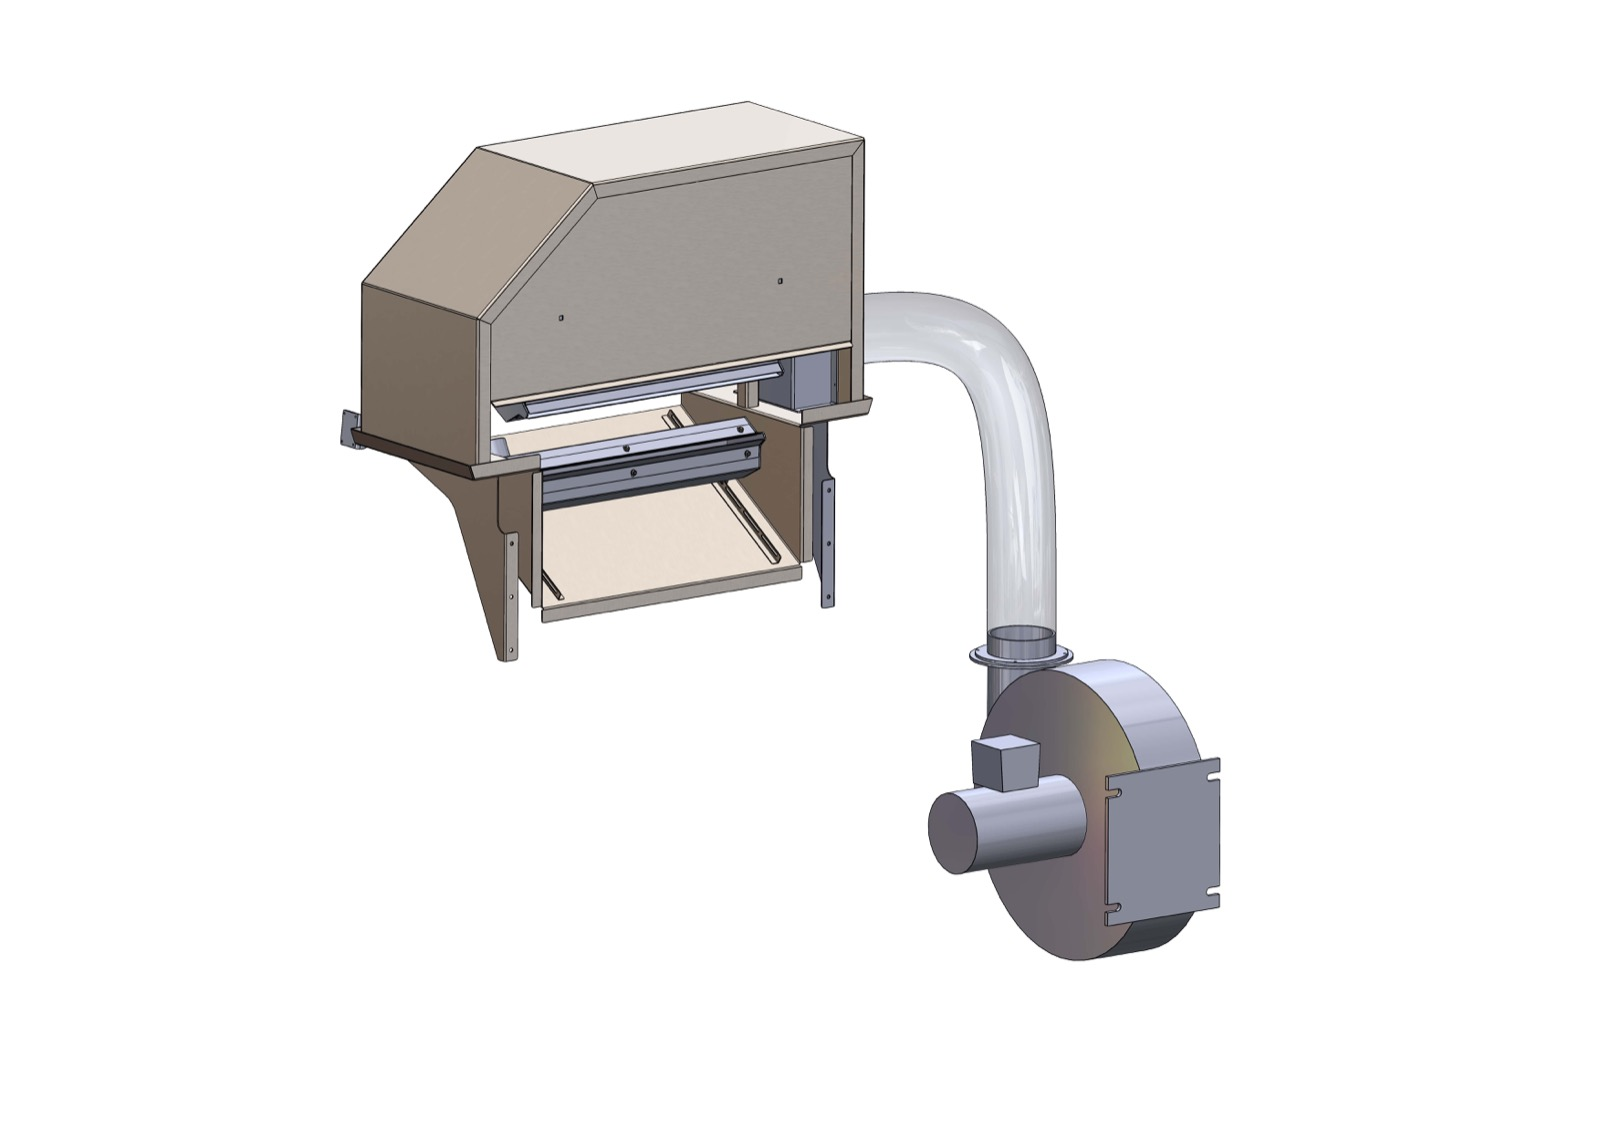 https://www.industrialproductsolutions.nl/wp-content/uploads/2021/05/WhatsApp-Image-2021-05-27-at-14.17.25-14.jpeg